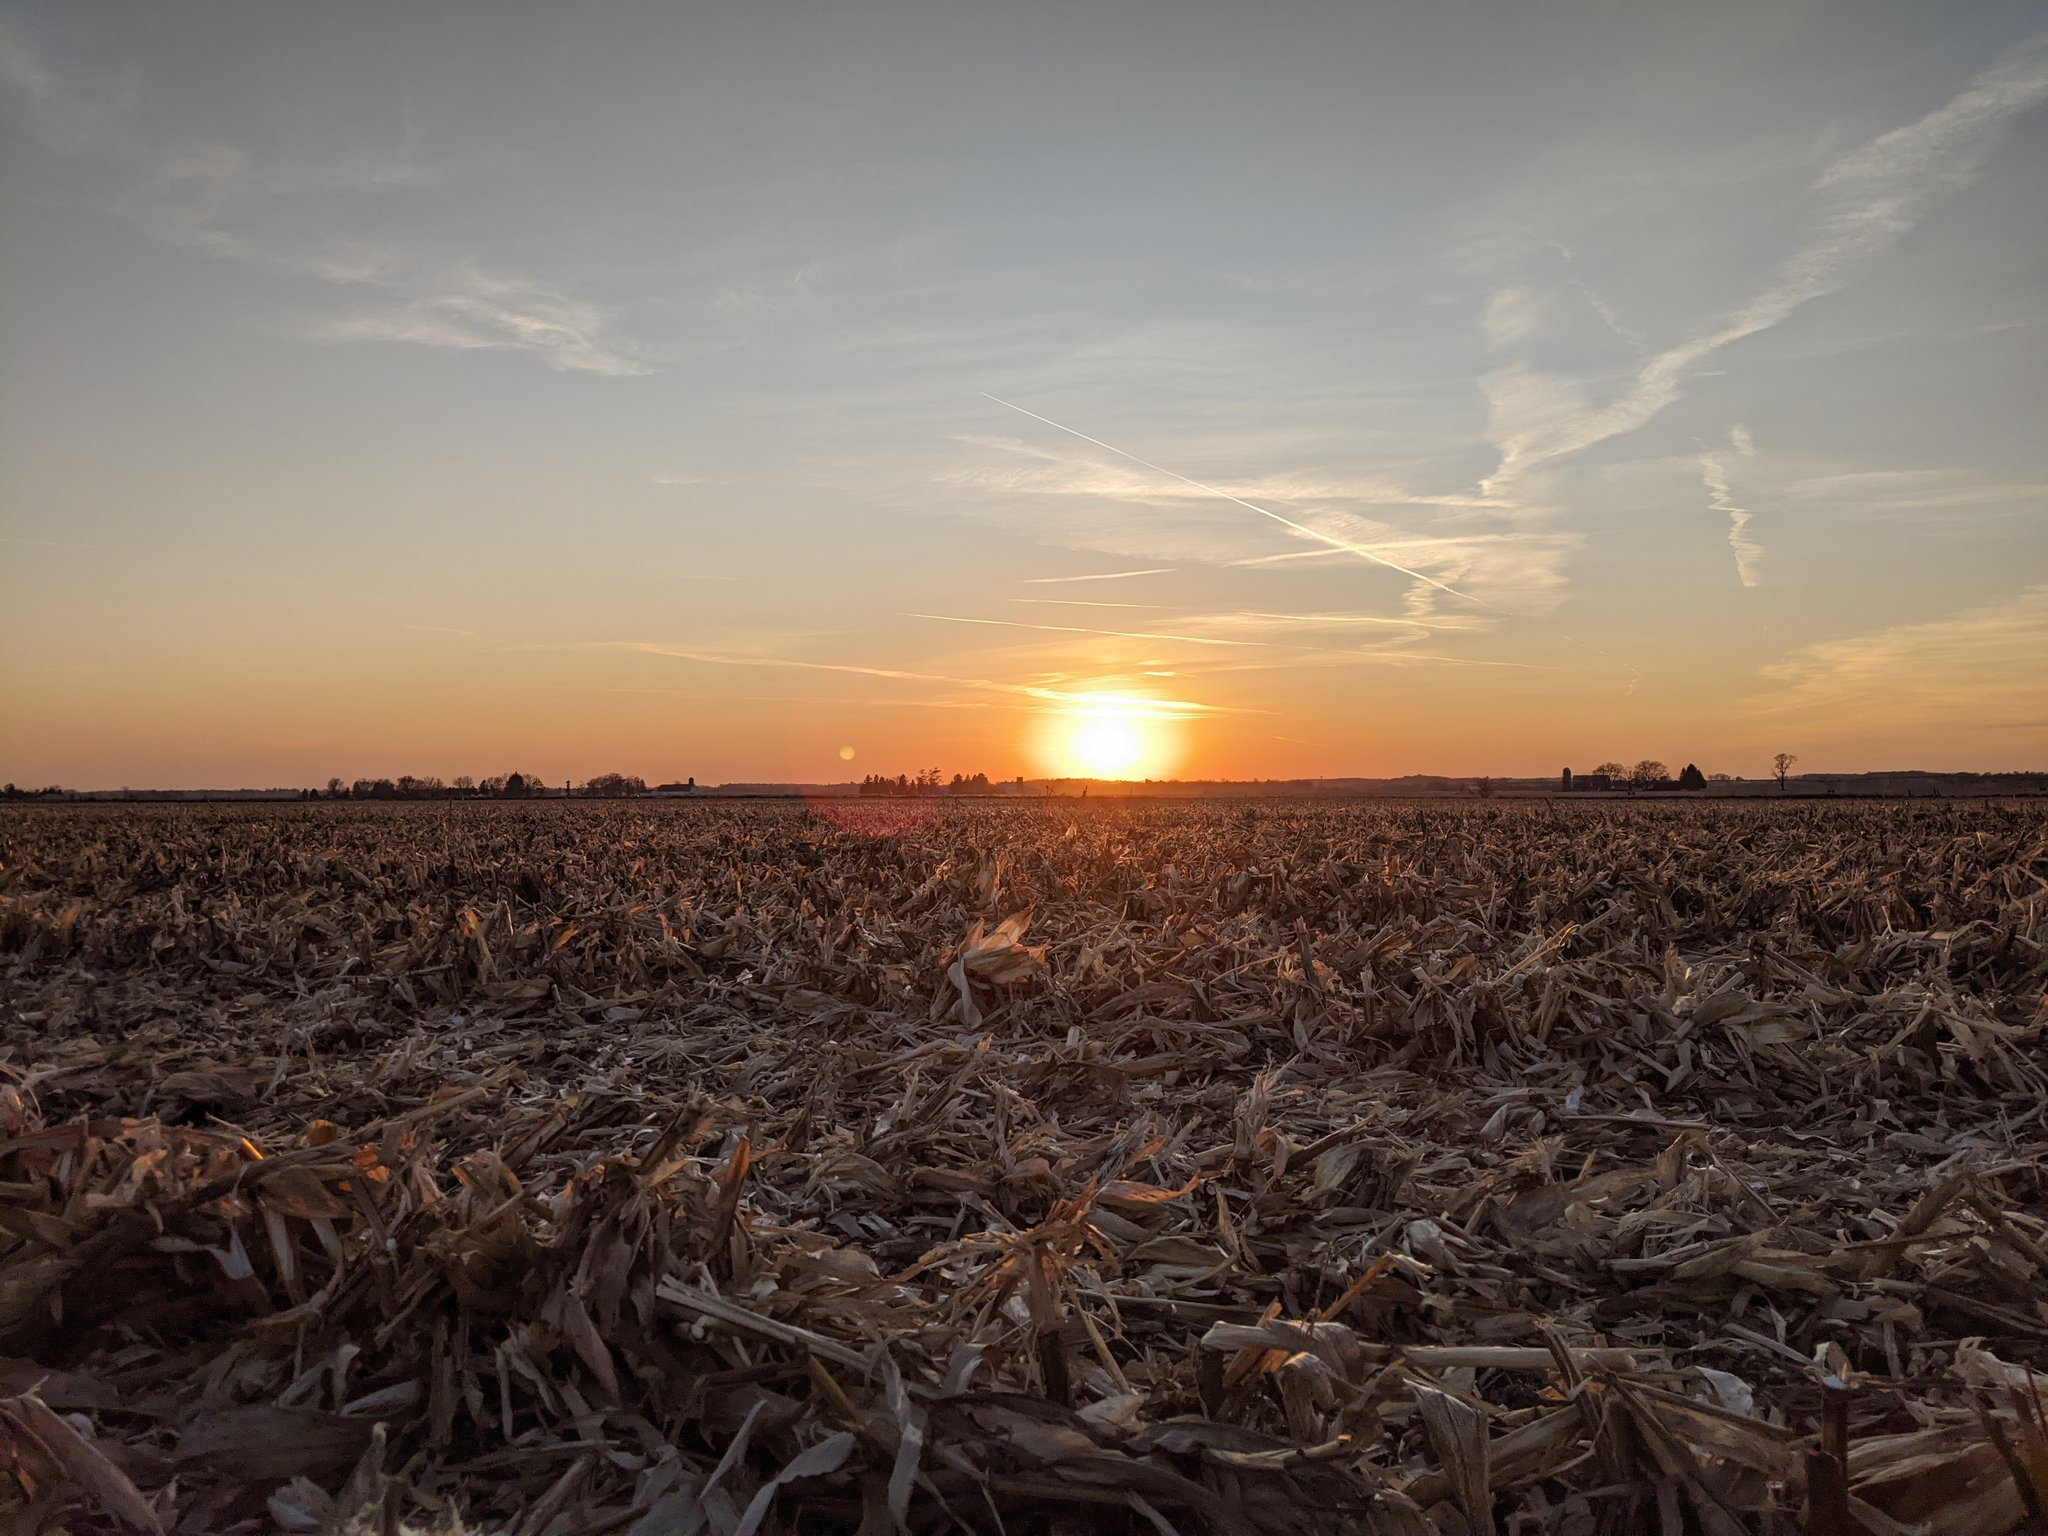 Sunset over a field with sparse trees far in the distance. The sky is blue and fades to orange near the horizon. The foreground has visible corn stubble.